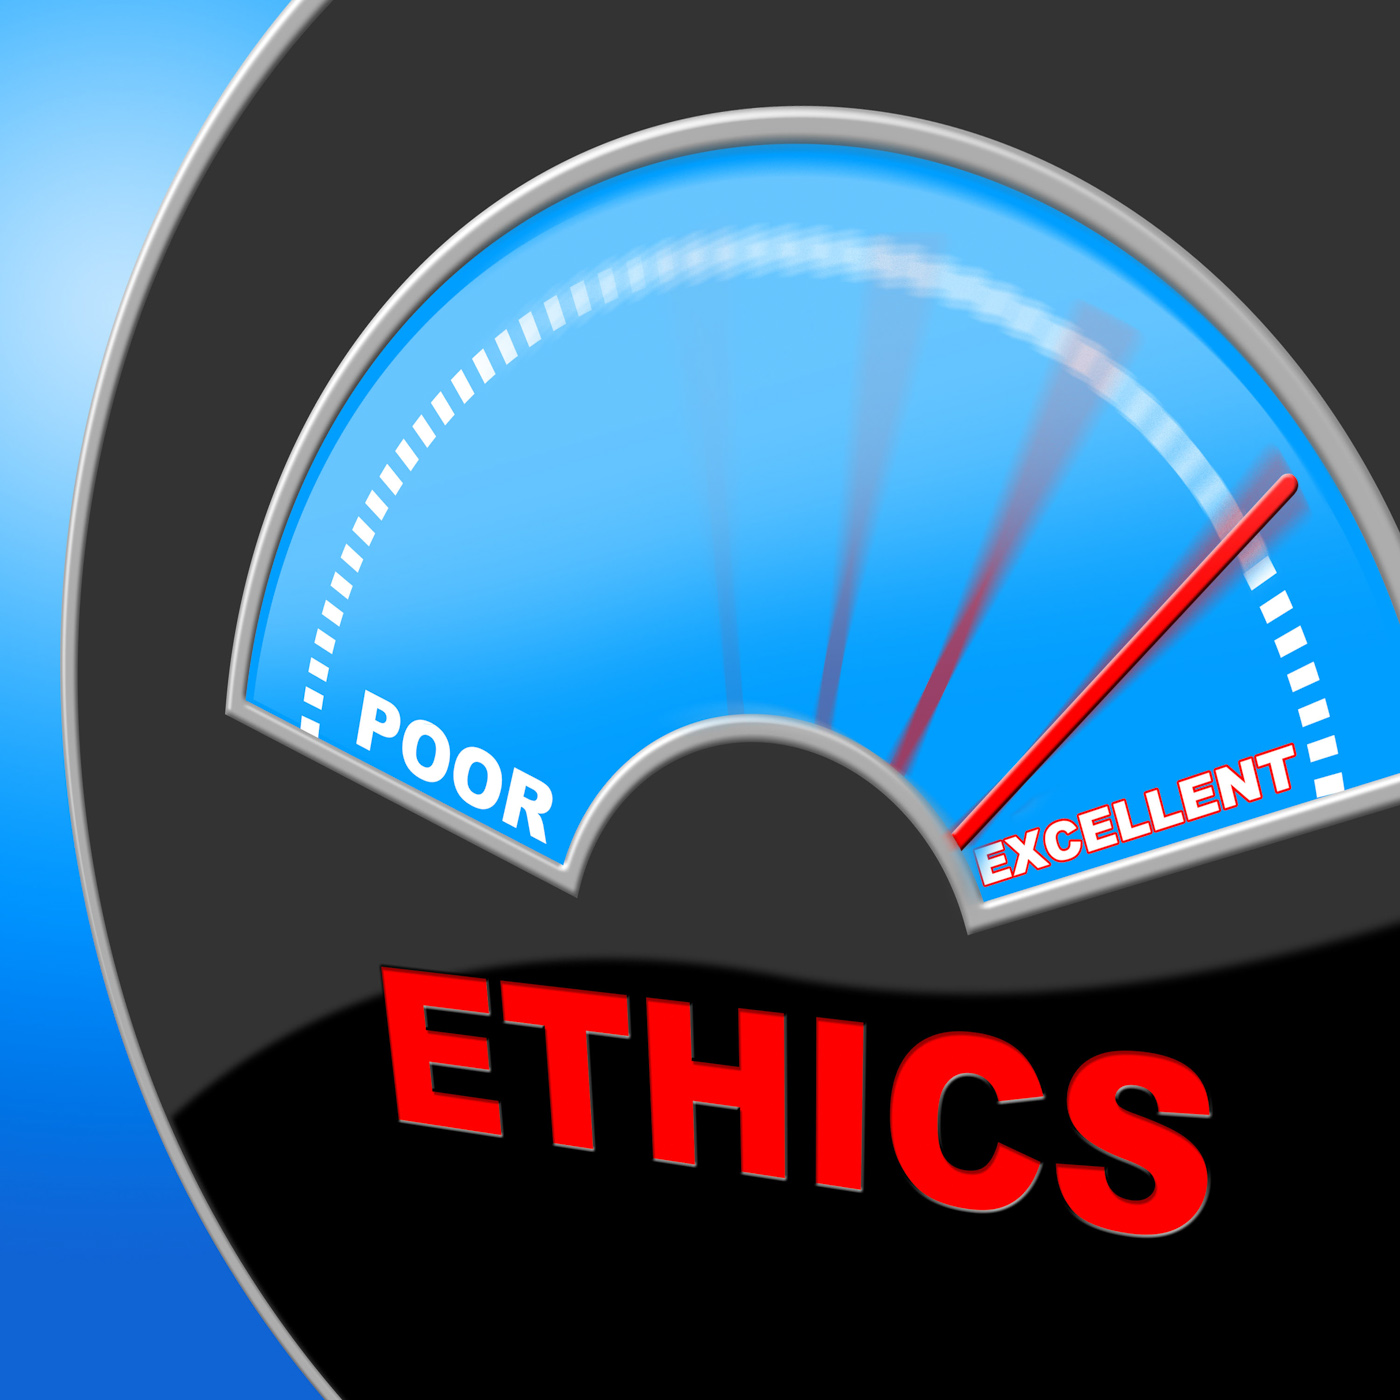 Excellent ethics shows moral principles and excellency photo